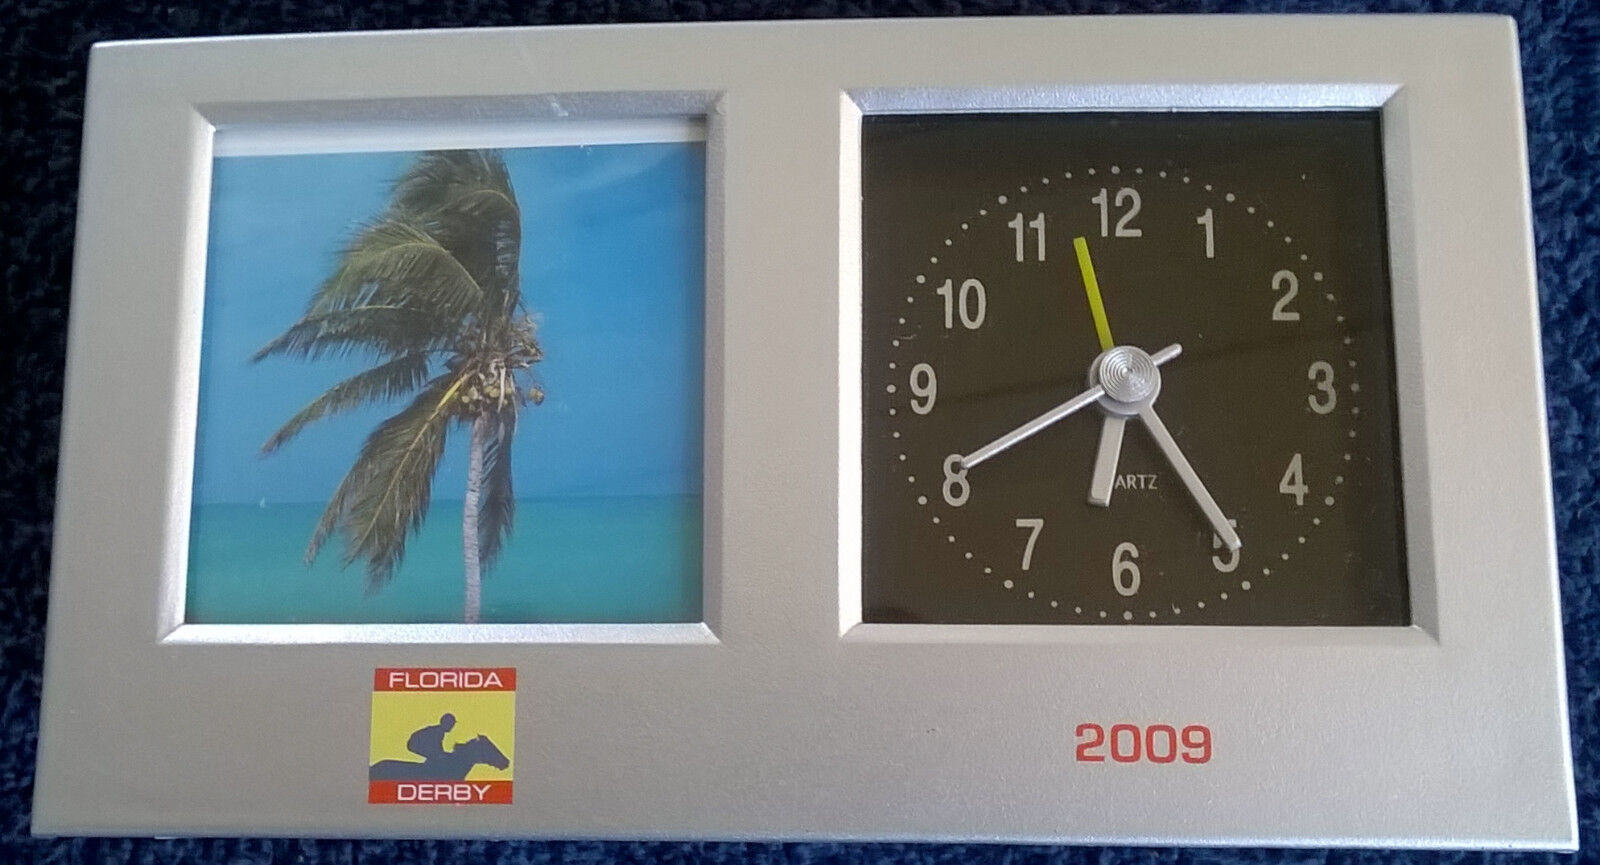 2009 Florida Derby Picture Frame and Desk Clock Alarm~Free Shipping